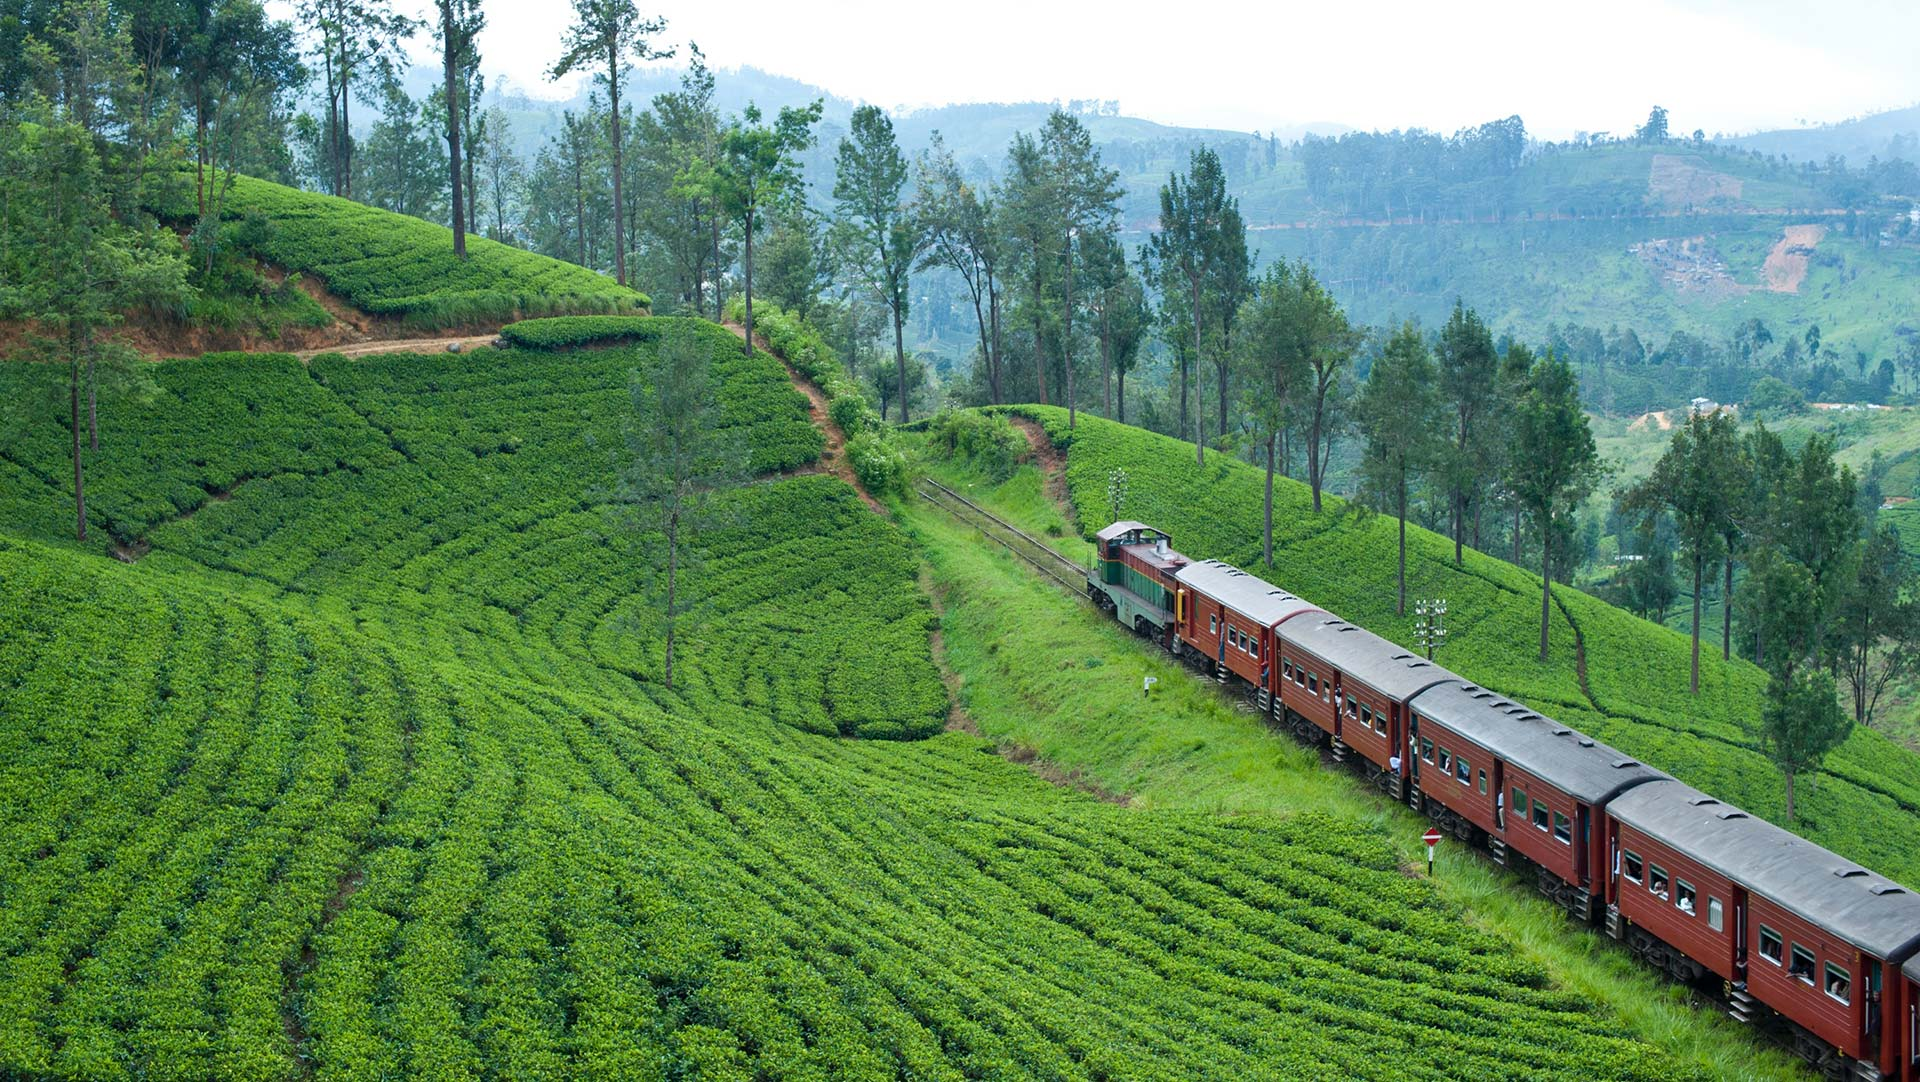 Train traveling through the scenic tea country, Sri Lanka